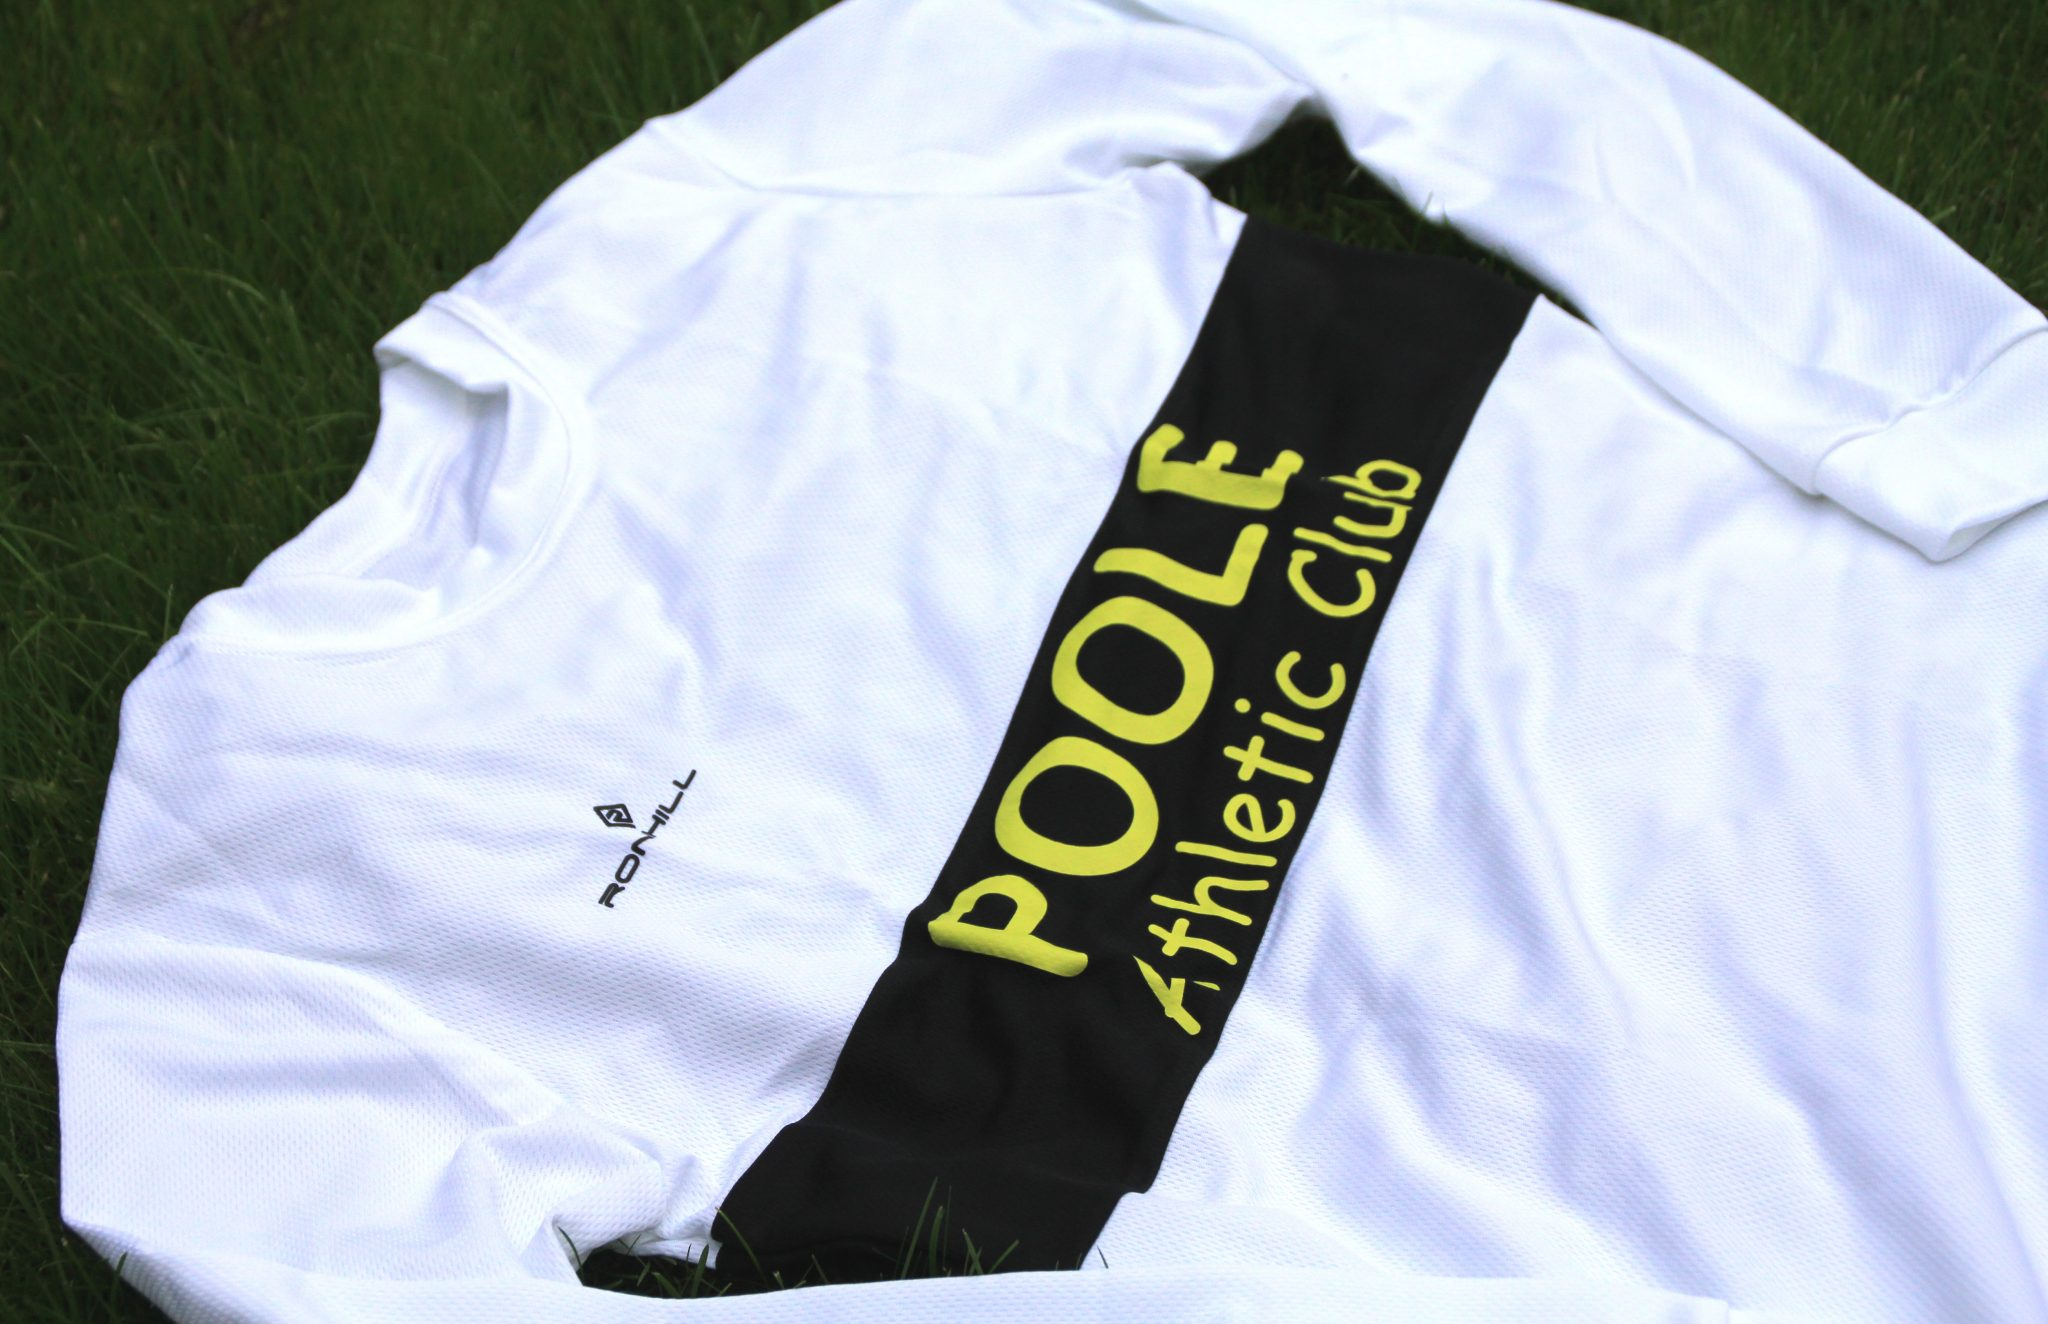 Poole AC road running long sleeve top